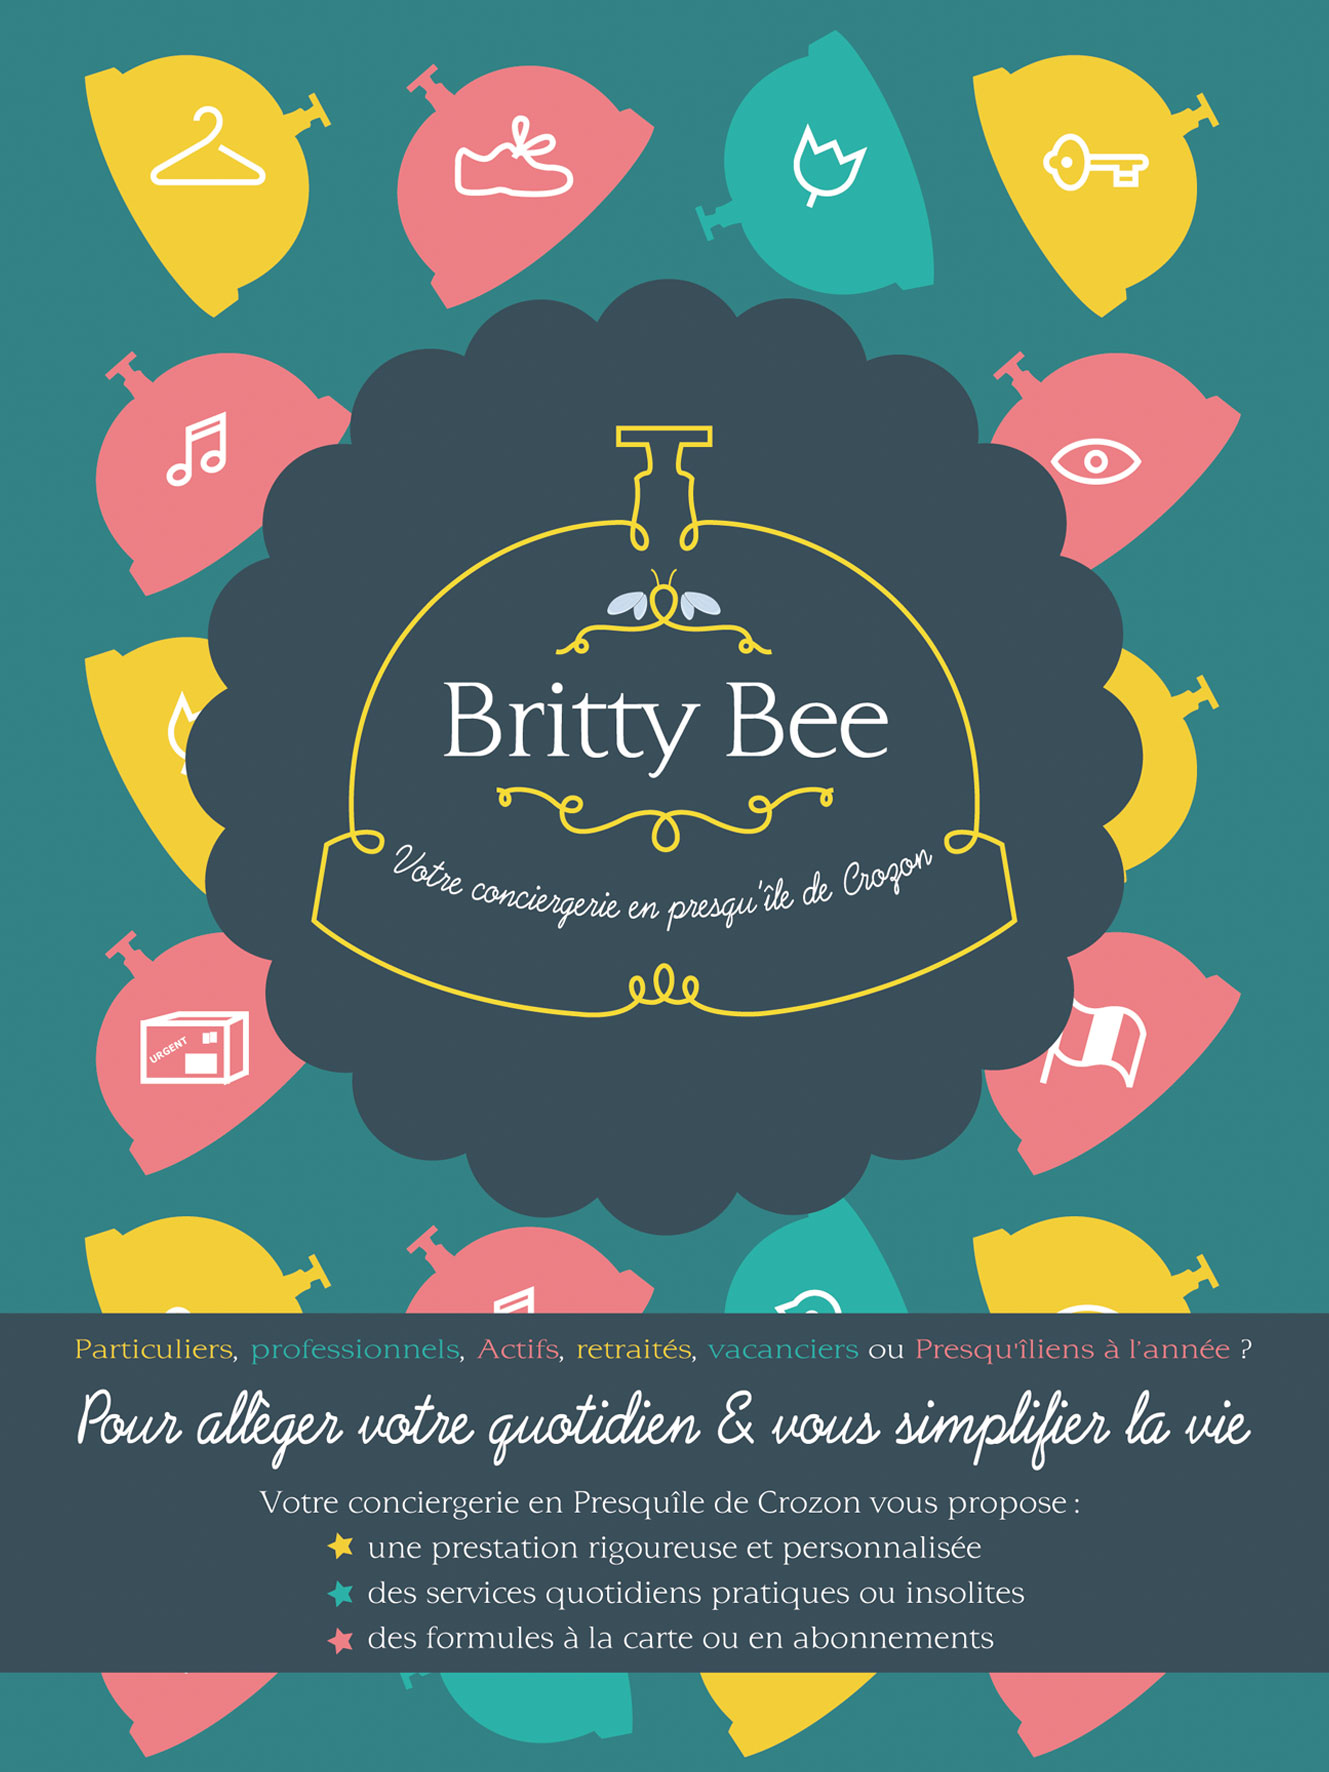 Britty-bee